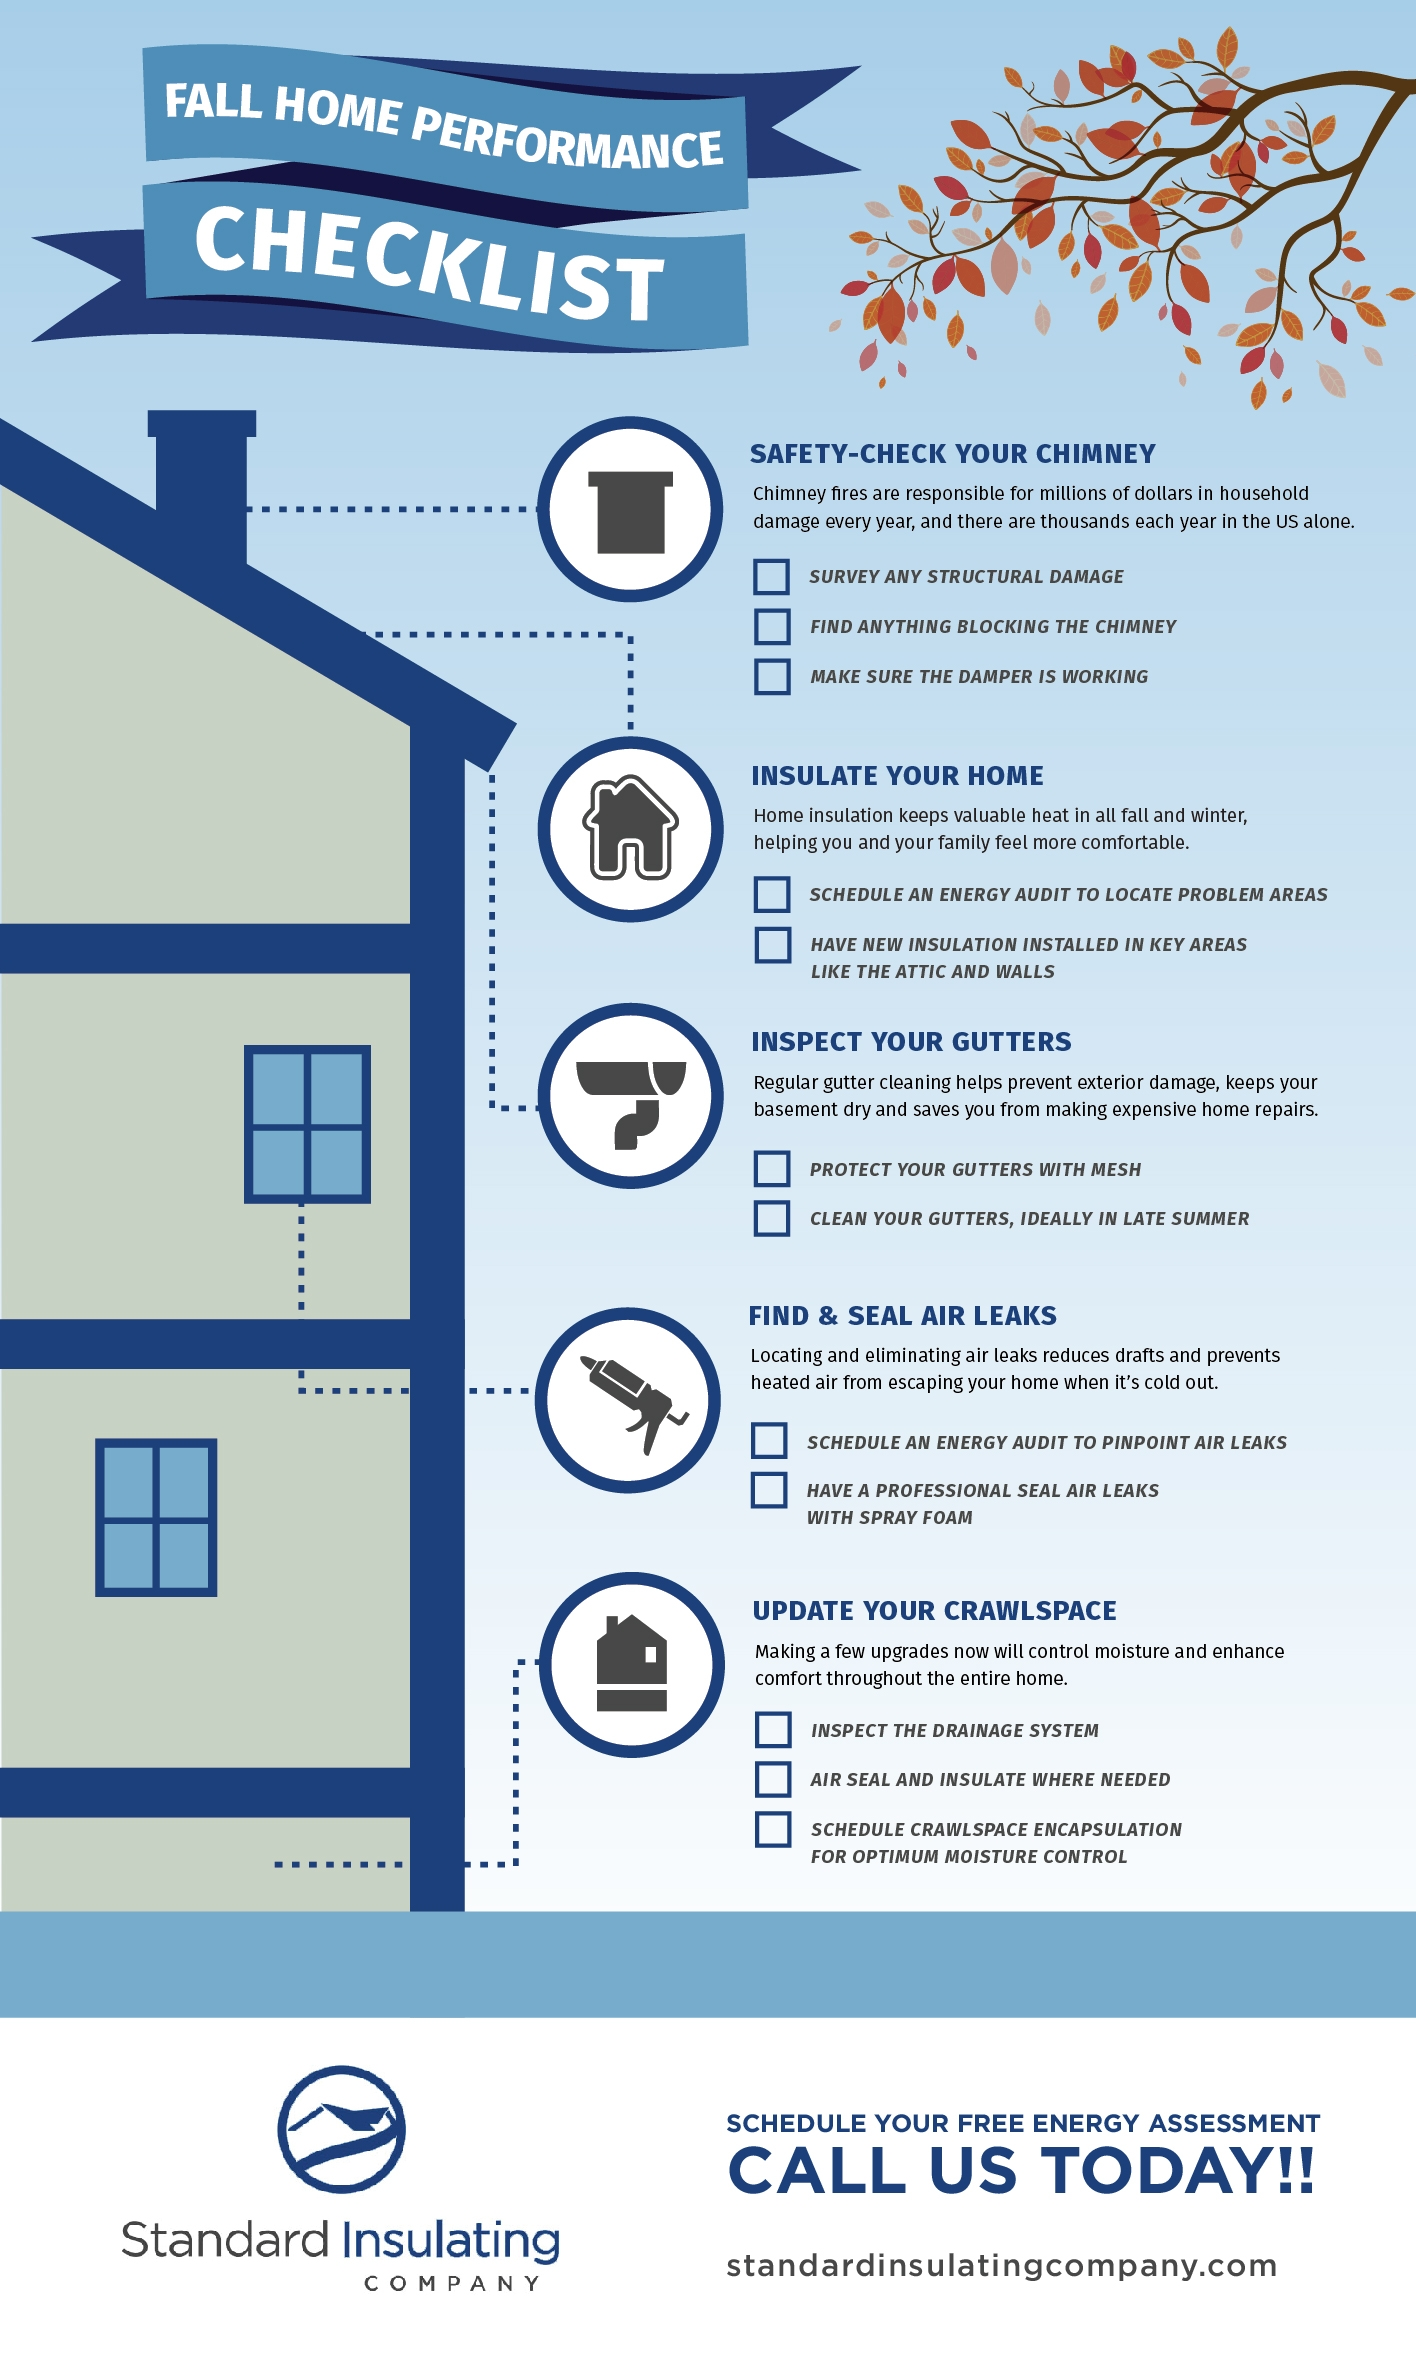 A check list of items to ensure your North Carolina home is ready for winter!